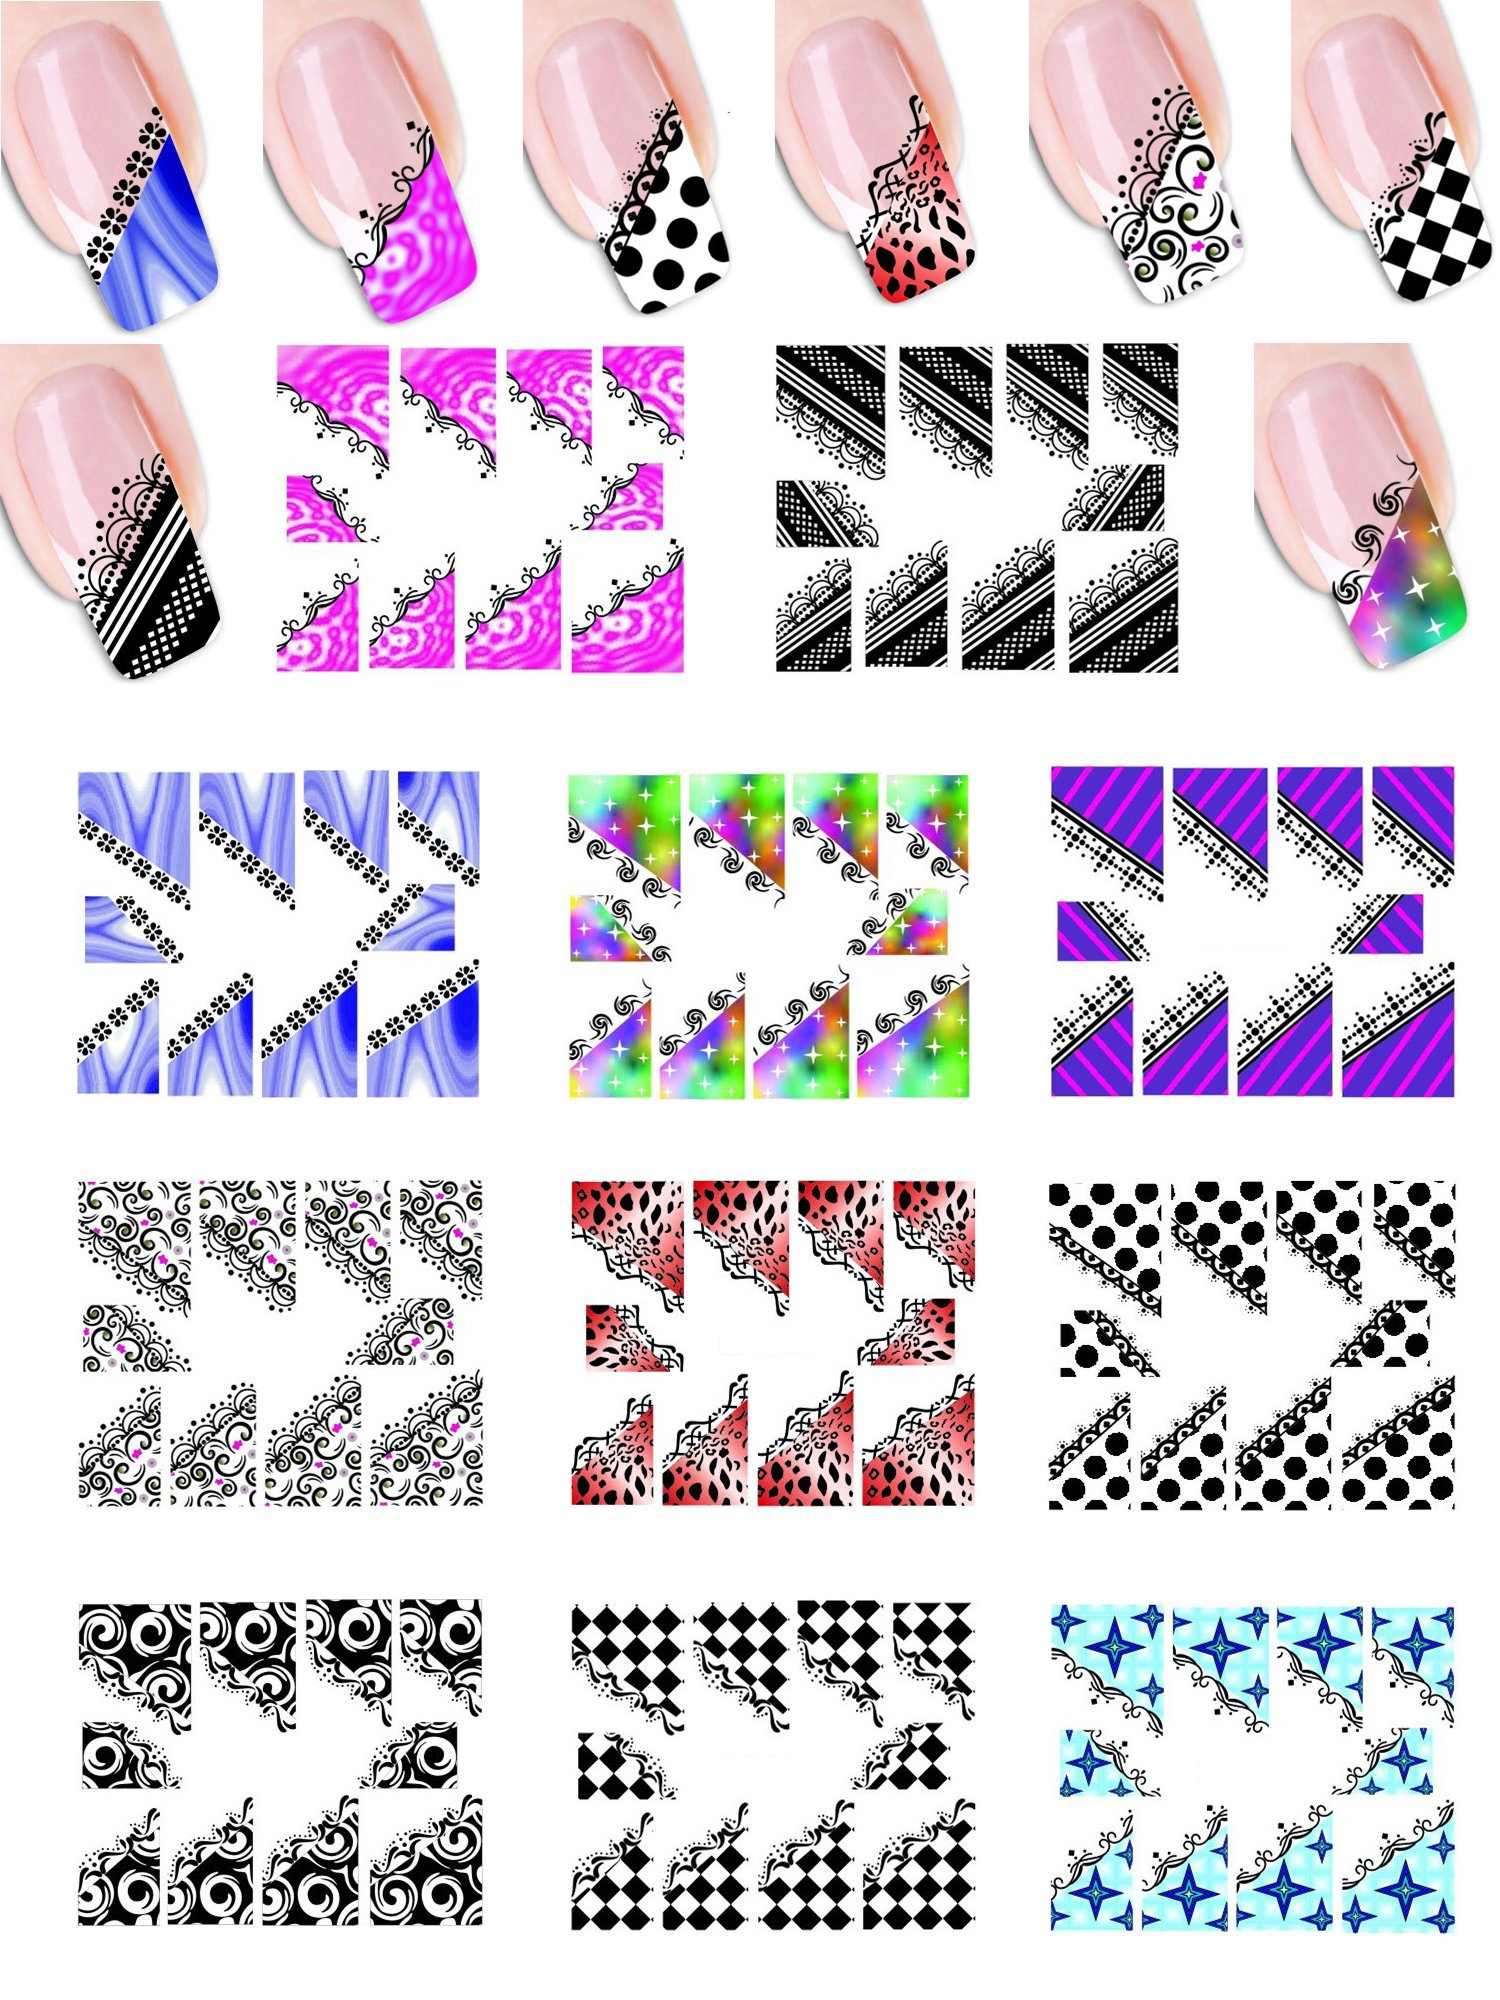 11 Styles Mixed Designed Colorful Leopard Lace Black White Checker Dots Circle Nail Art Polish Sticker Tattoo Decal Patch Wraps Tips for Women Girls Wife